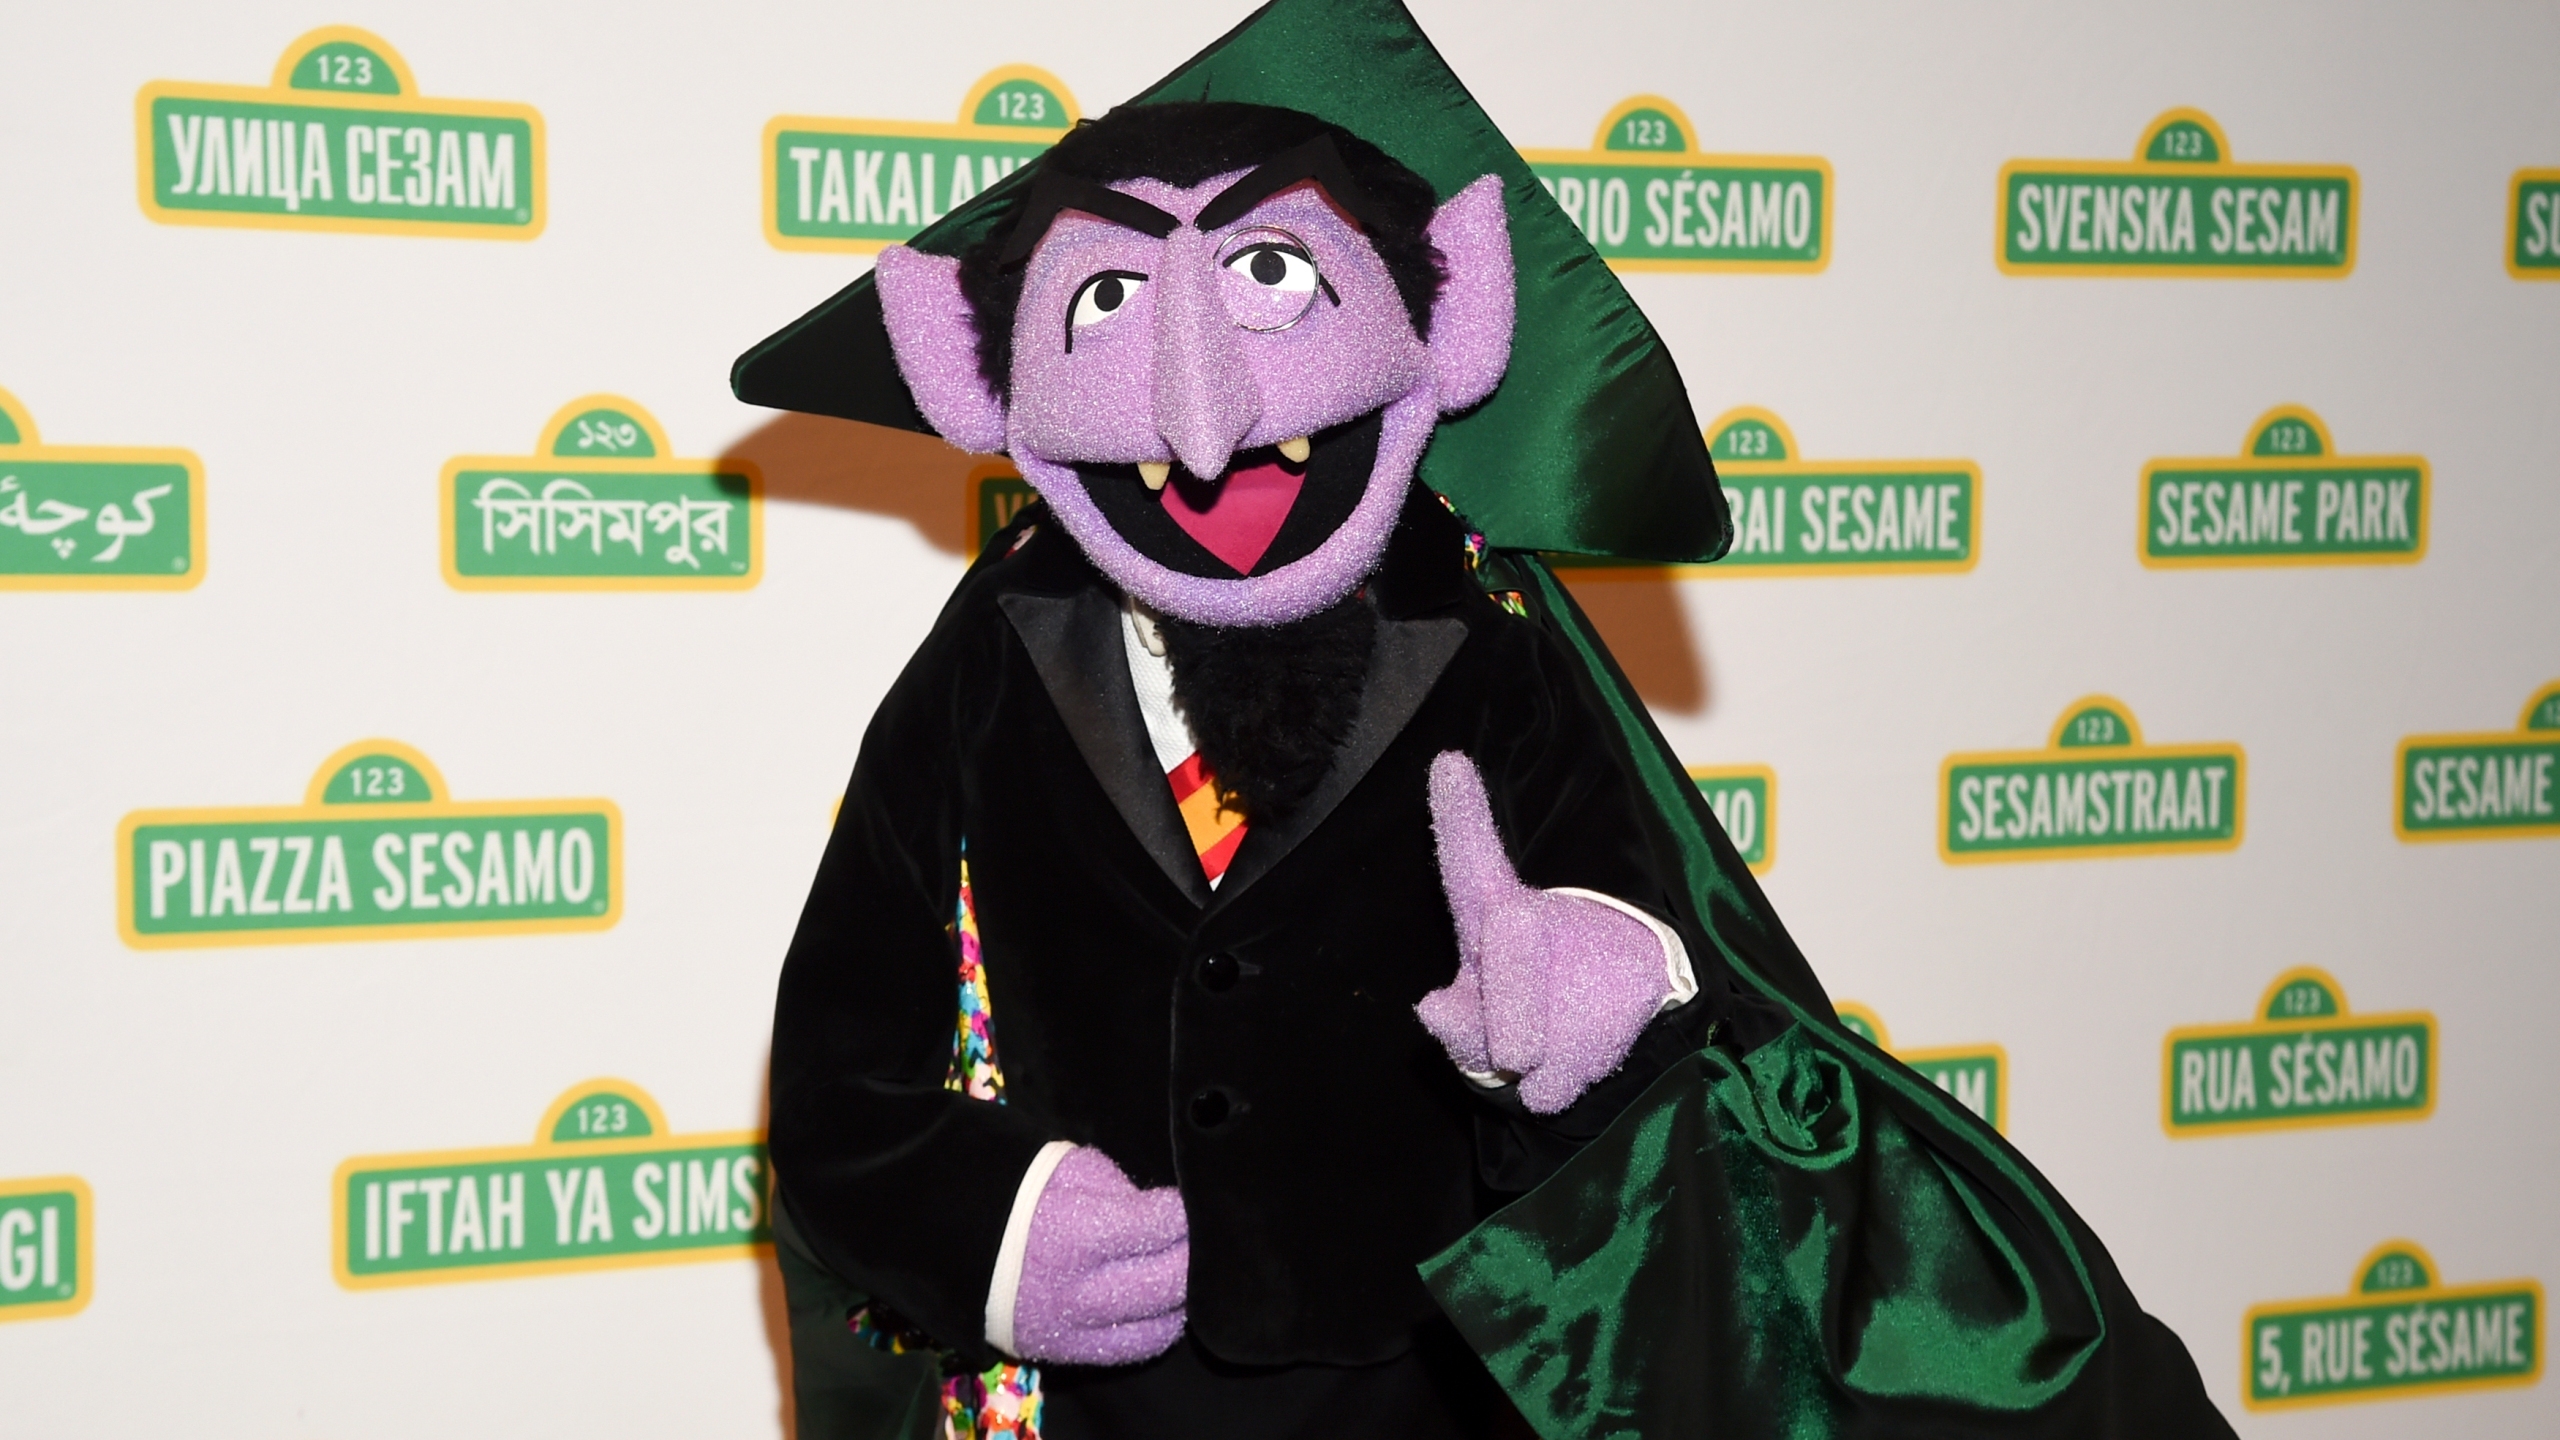 The Count